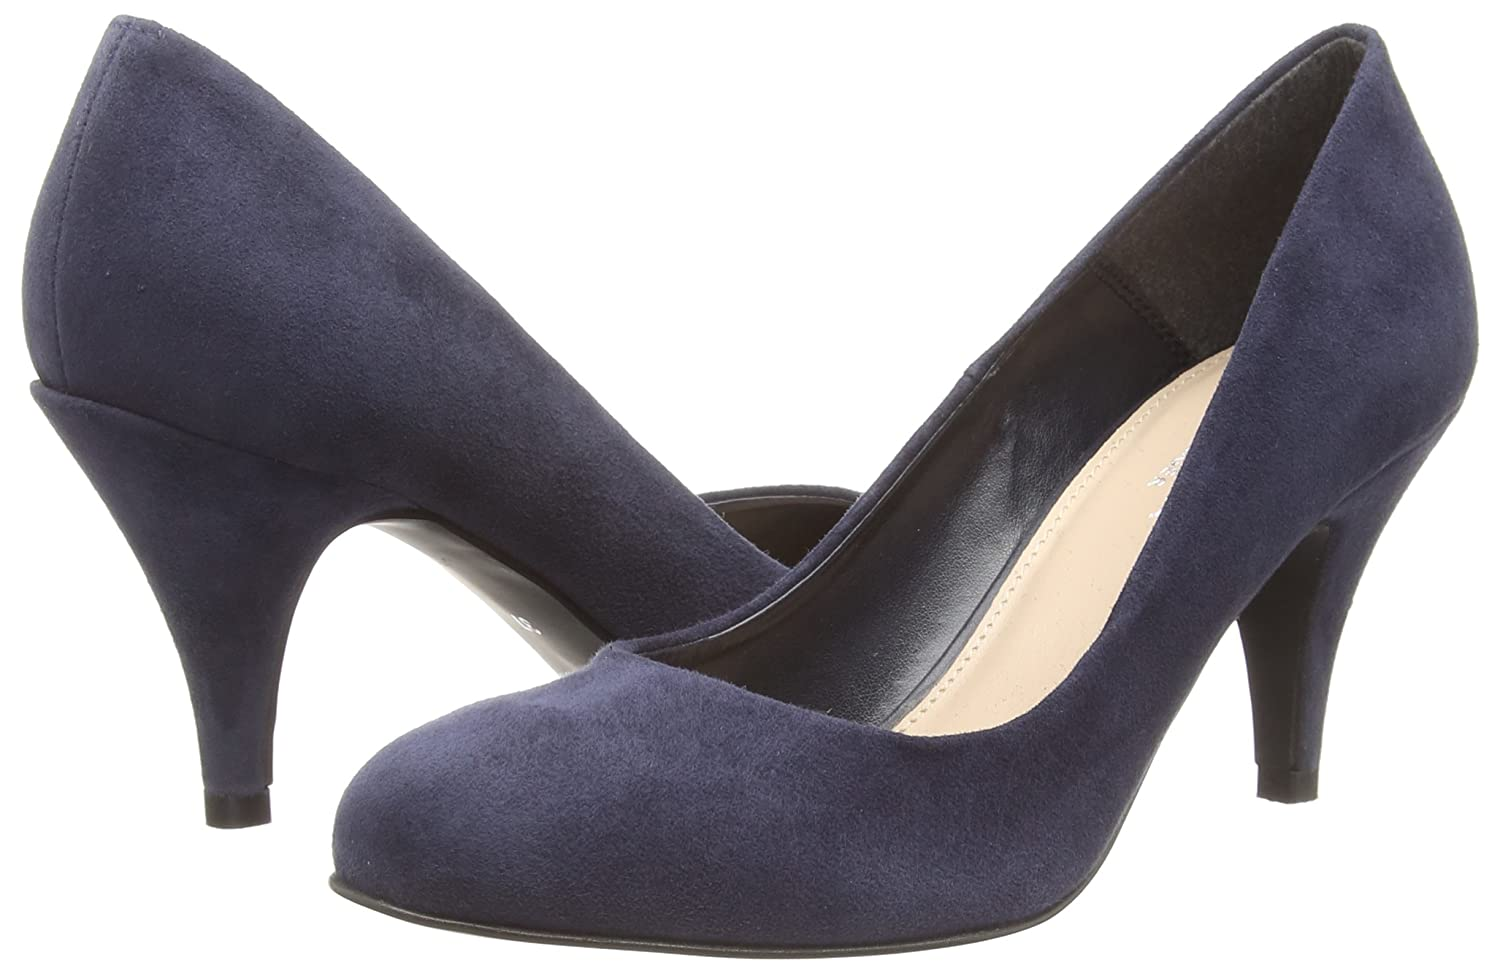 a97eaaae4d4 Carvela Women s Adam Closed-Toe Pumps